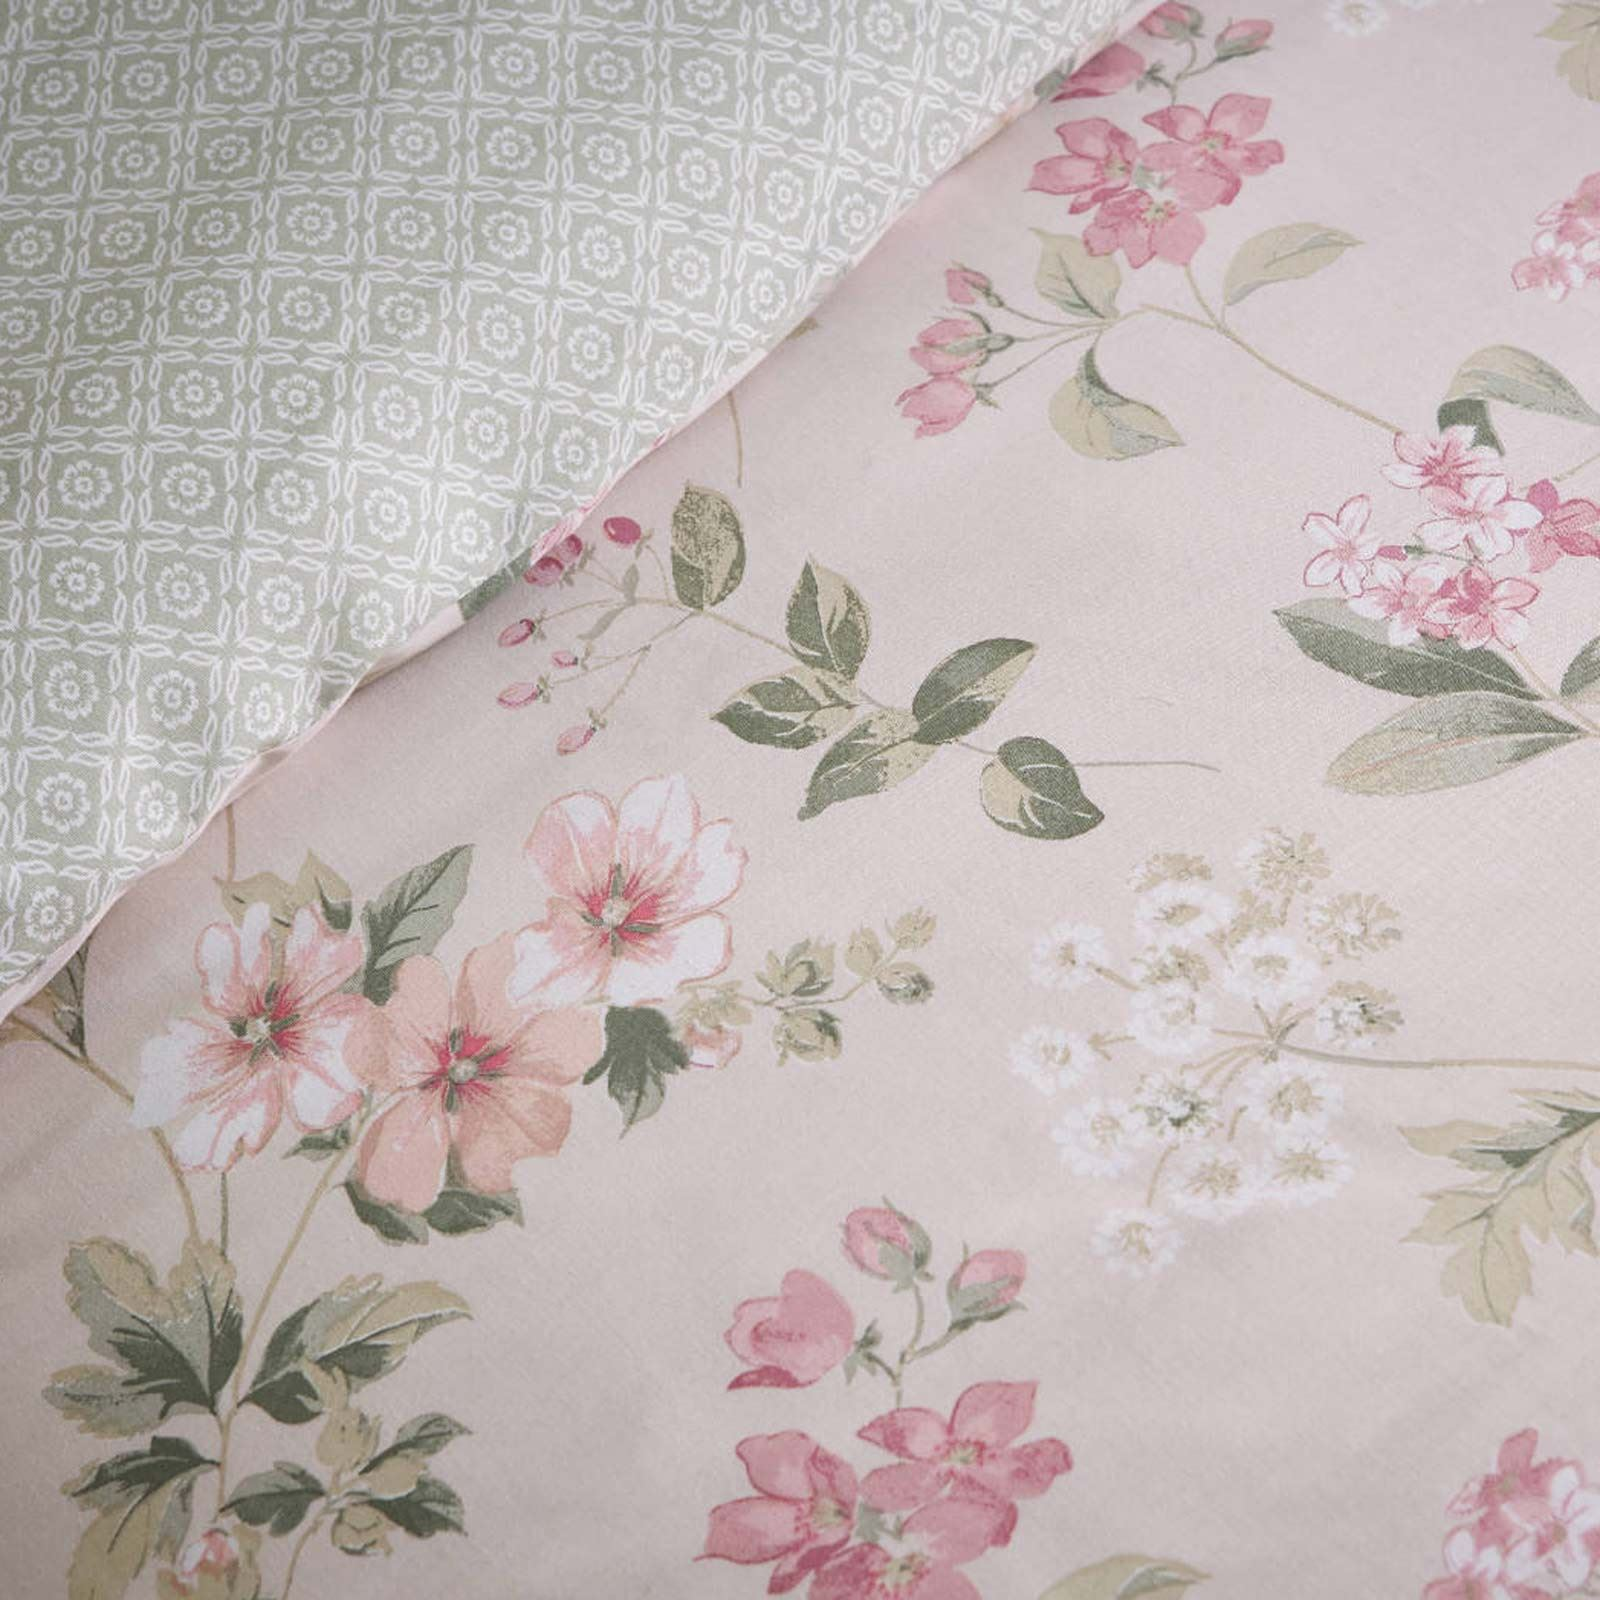 Floral Duvet Covers Lorena Vintage Flower Print Cotton ...